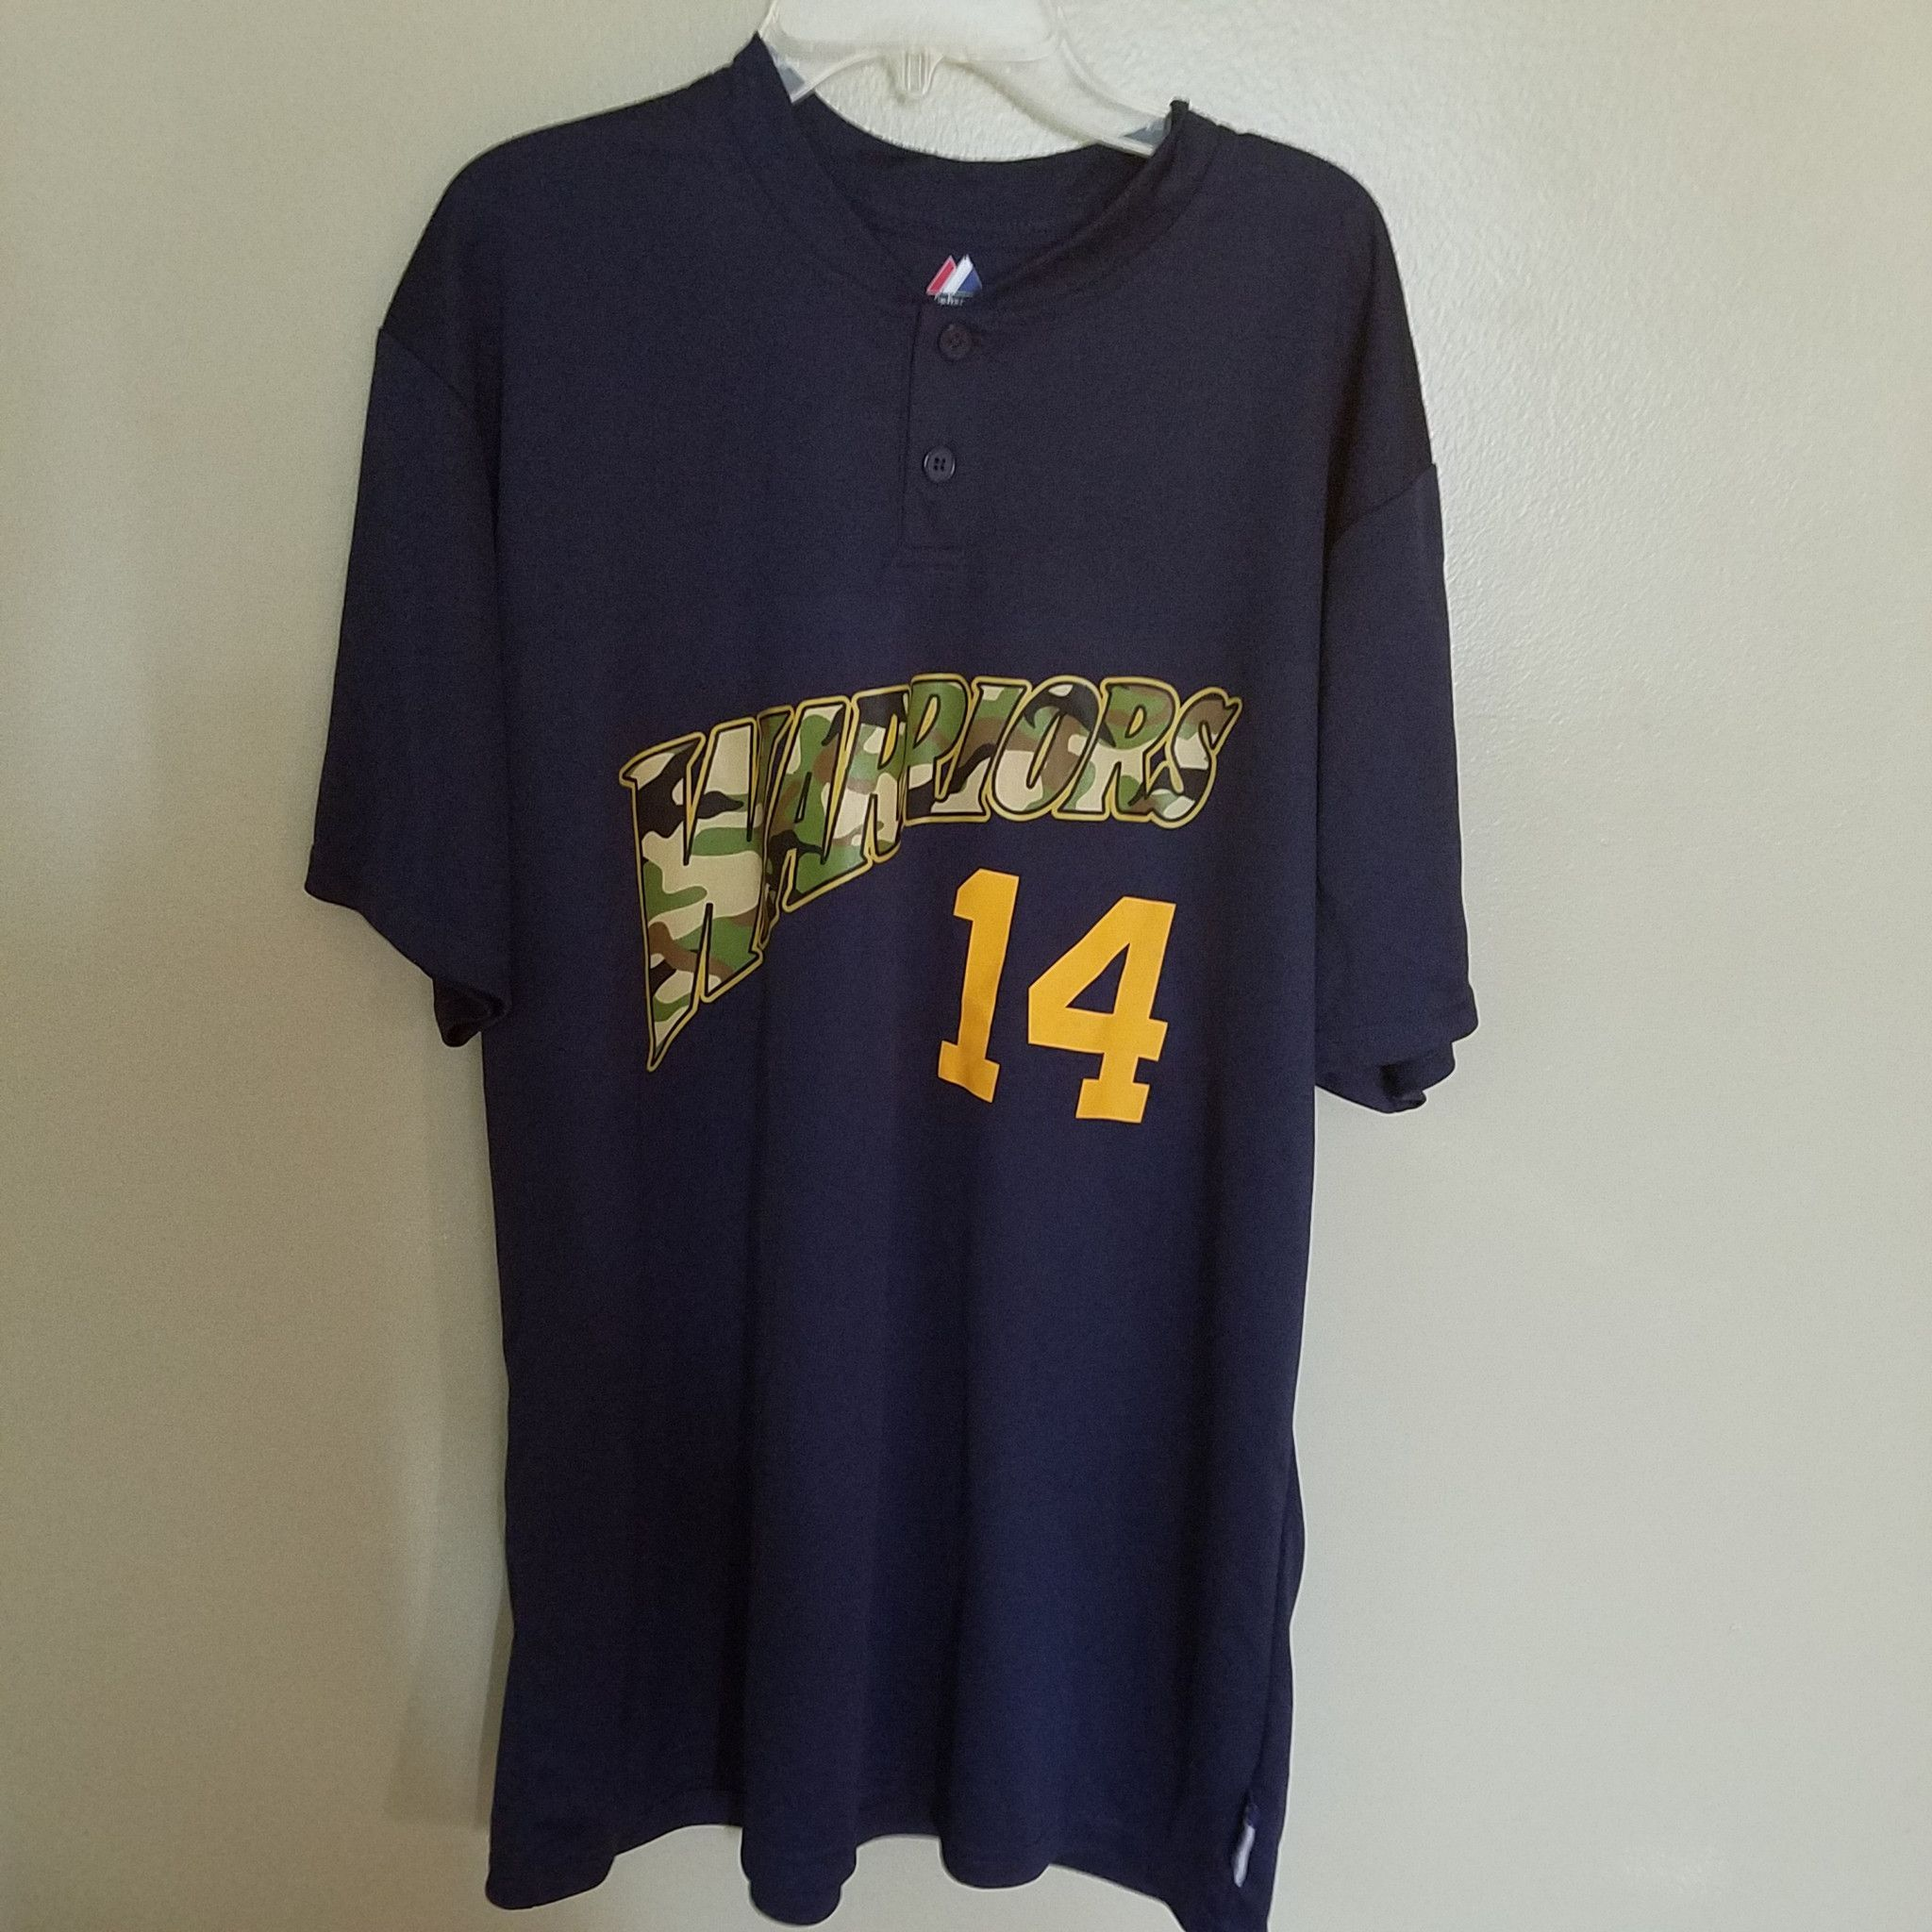 GOLDEN STATE WARRIORS #14 CAMO MAJESTIC 2 BUTTON SHIRT SIZE LARGE ADULT COOL BASE